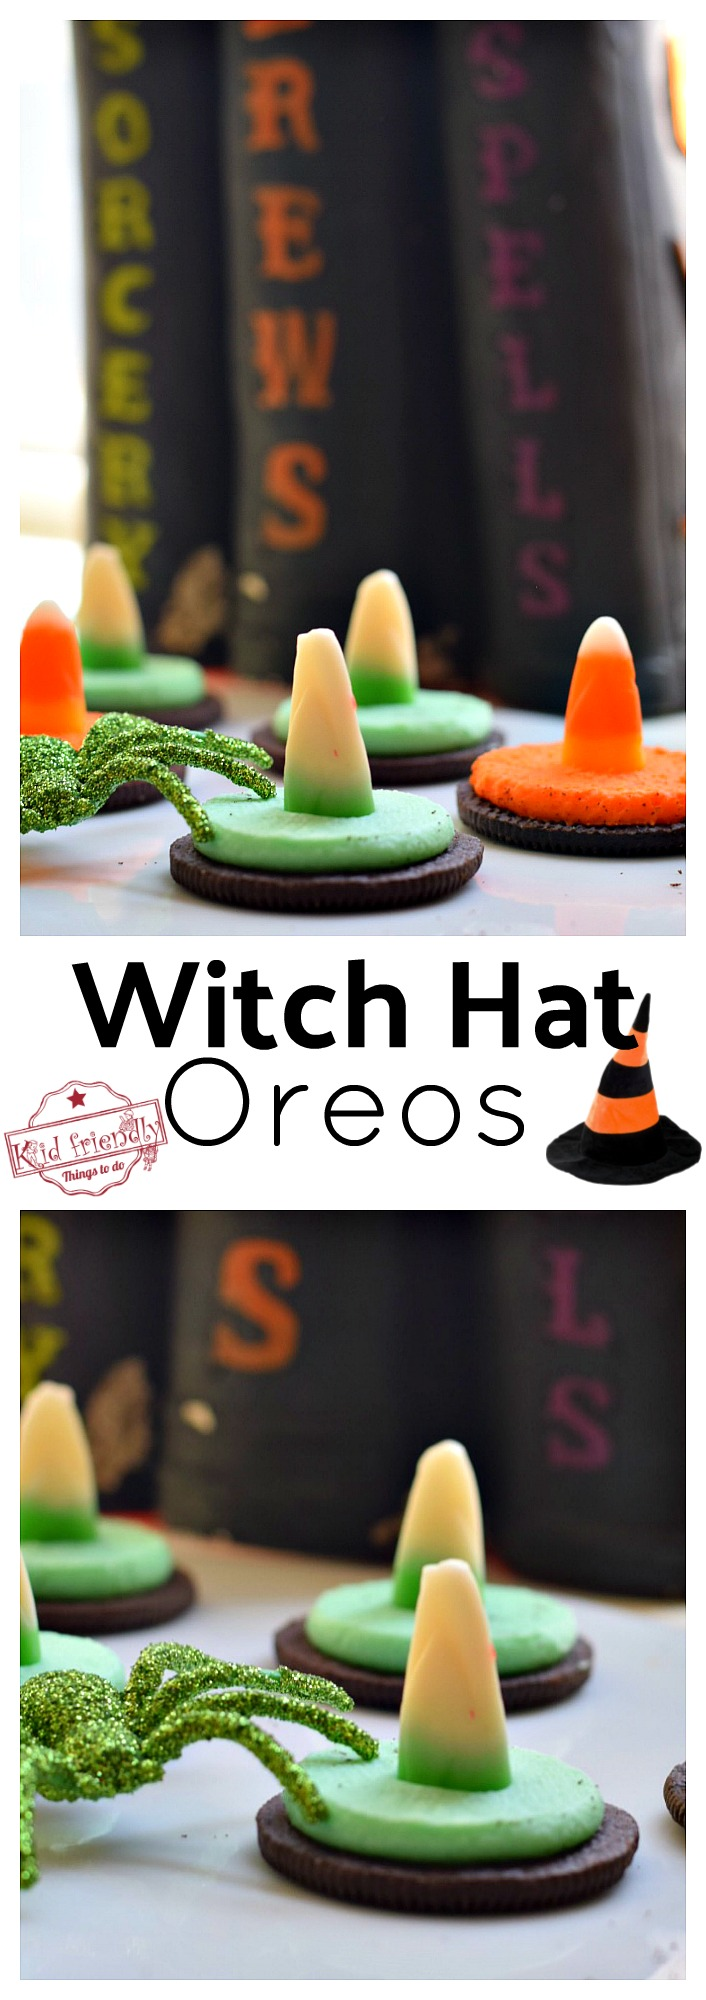 Easy to Make Witch Hat Oreo Cookies for a Fun Kid Halloween Food Idea - So cute and really the easiest idea ever! www.kidfriendlythingstodo.com